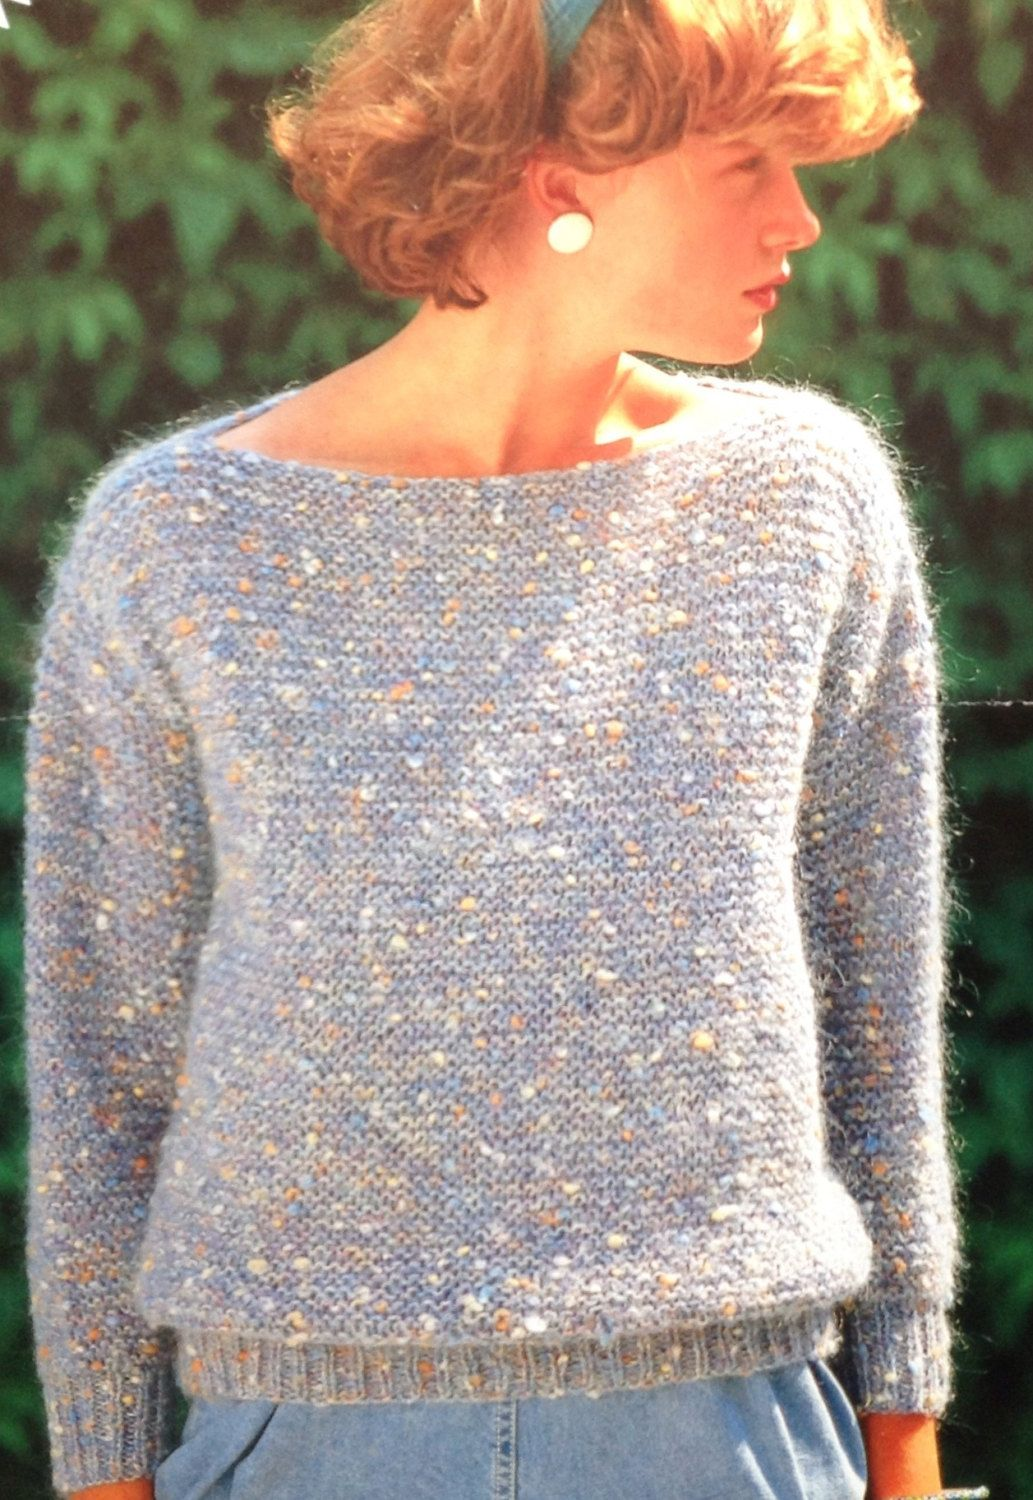 6009b7aaa1e0f6 This is a copy of the Original Pattern for Instant Download Easy Garter  Stitch Knitting Pattern Girls Ladies Womens Sweater Jumper Boat Neck size  30-40in ...